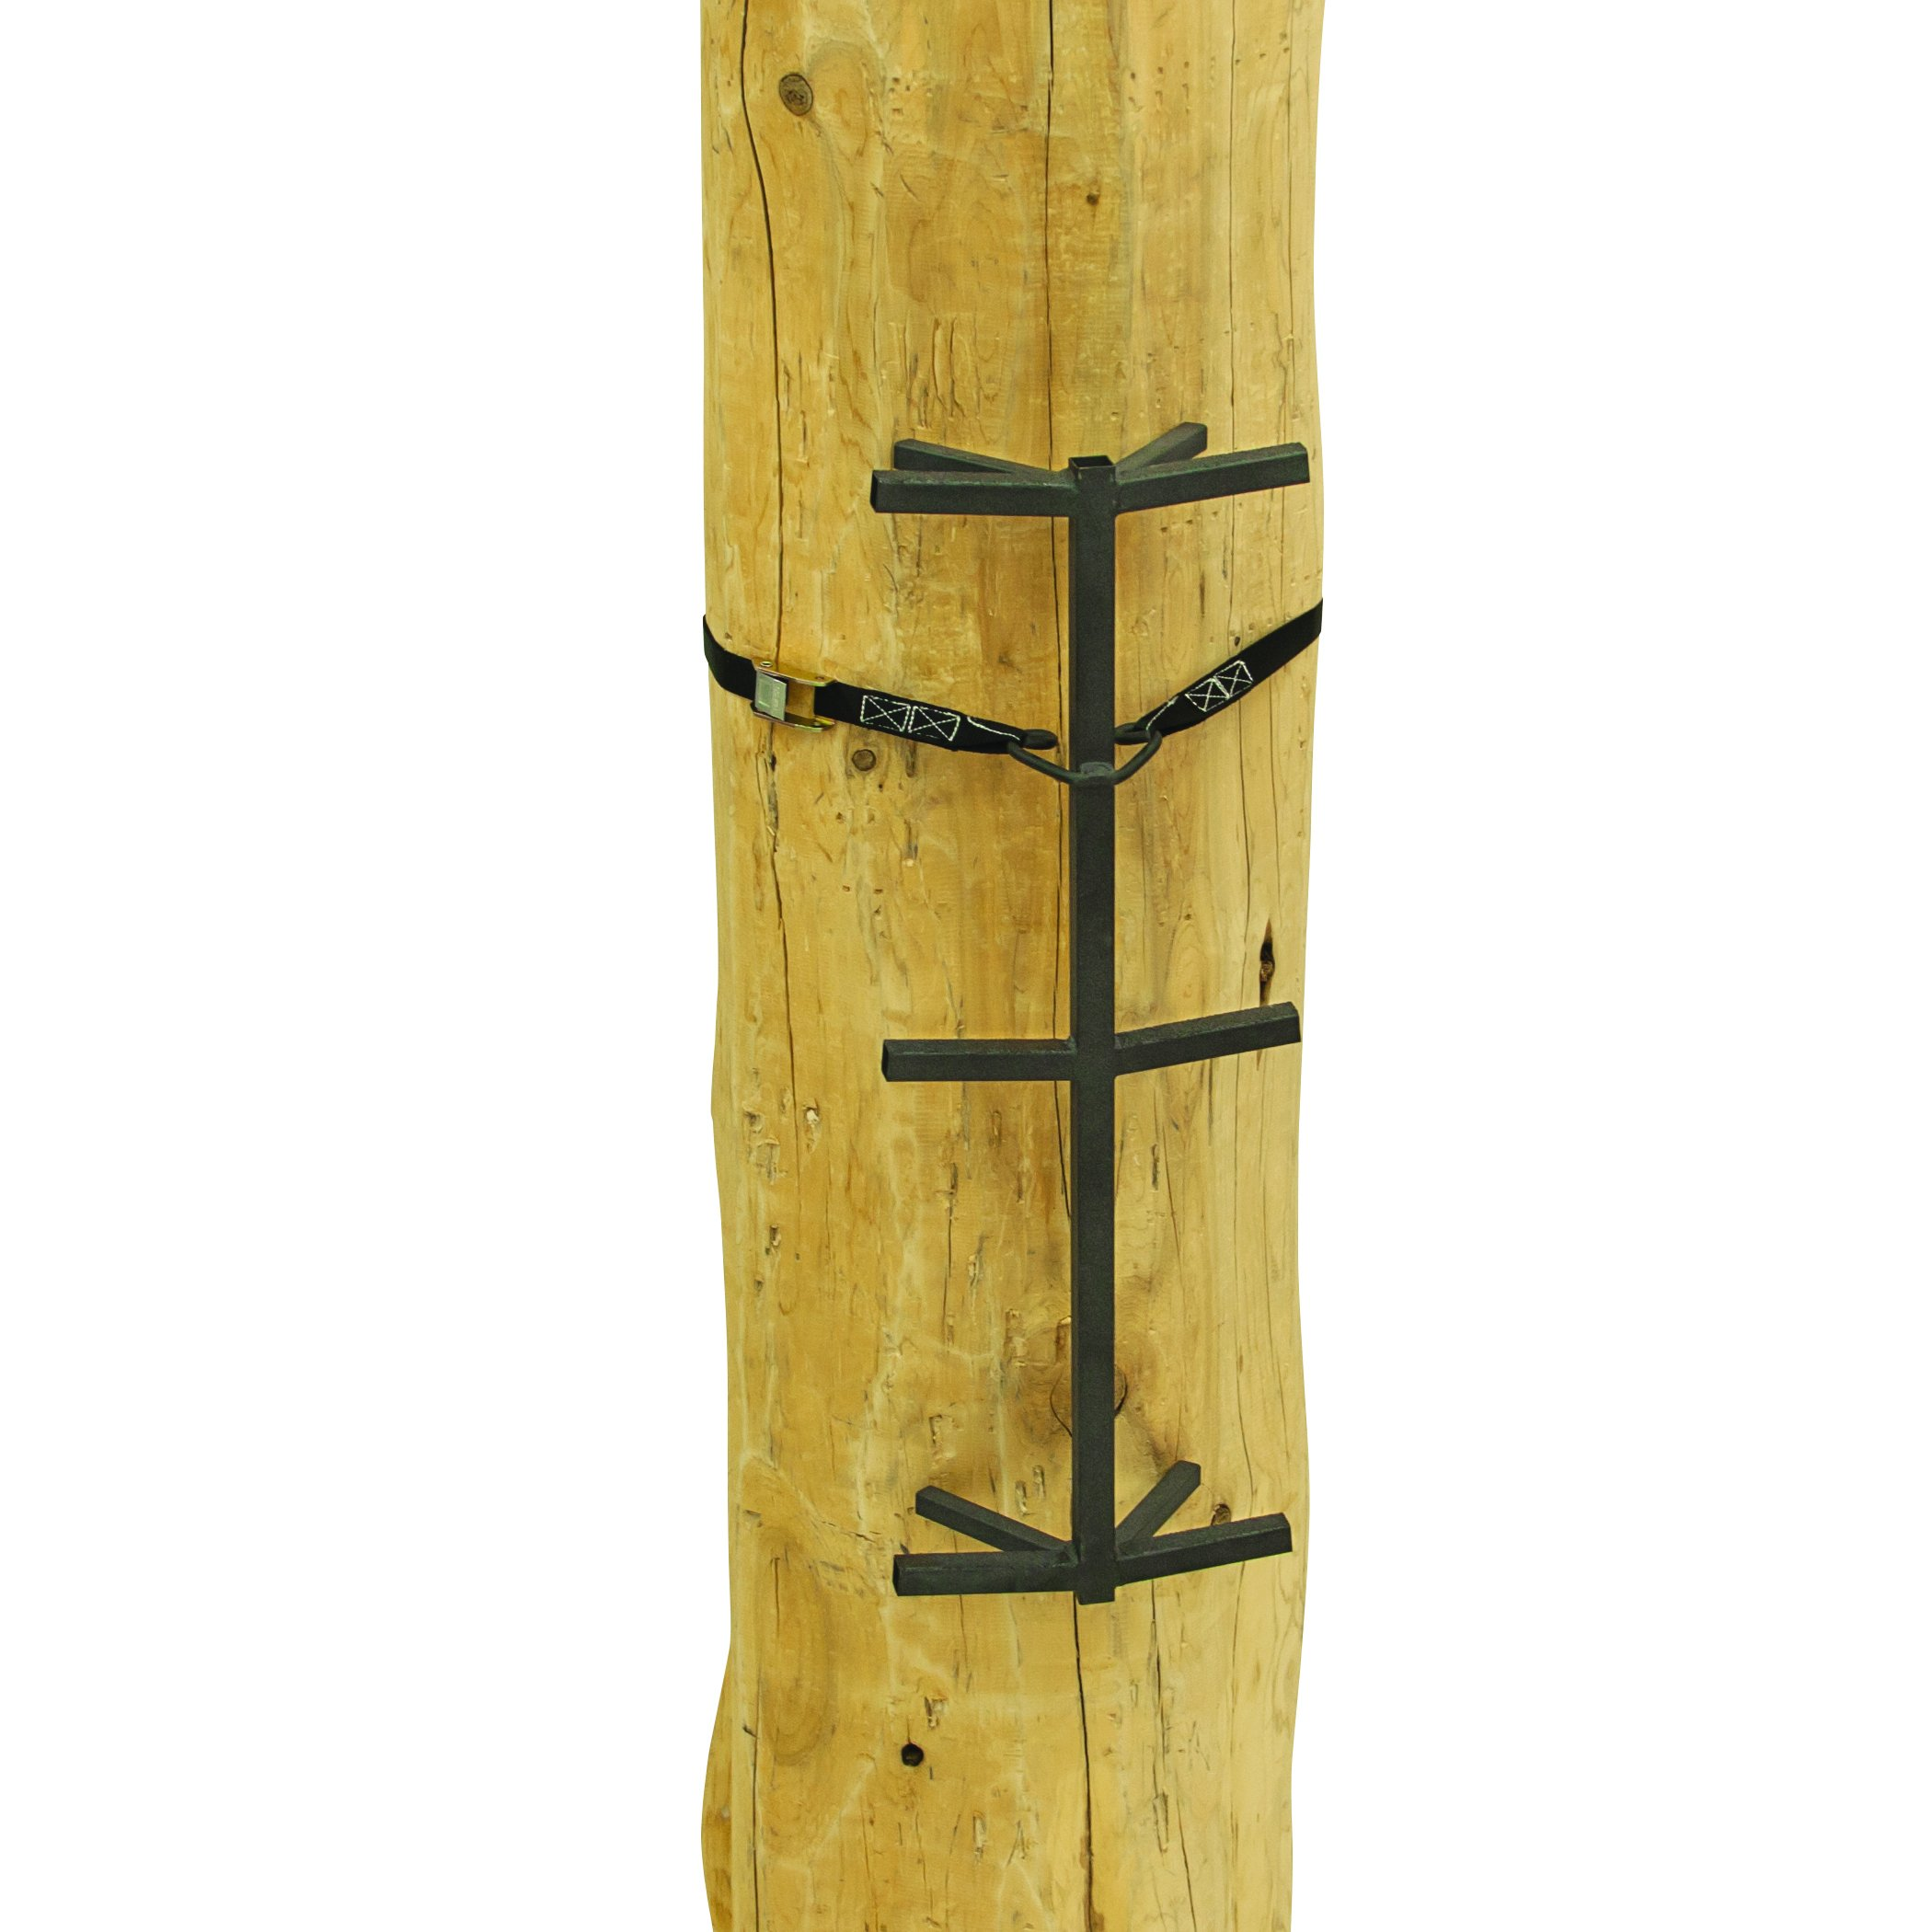 Rivers Edge RE718 Grip Stick 32-Inch Climbing Aid, (Single)